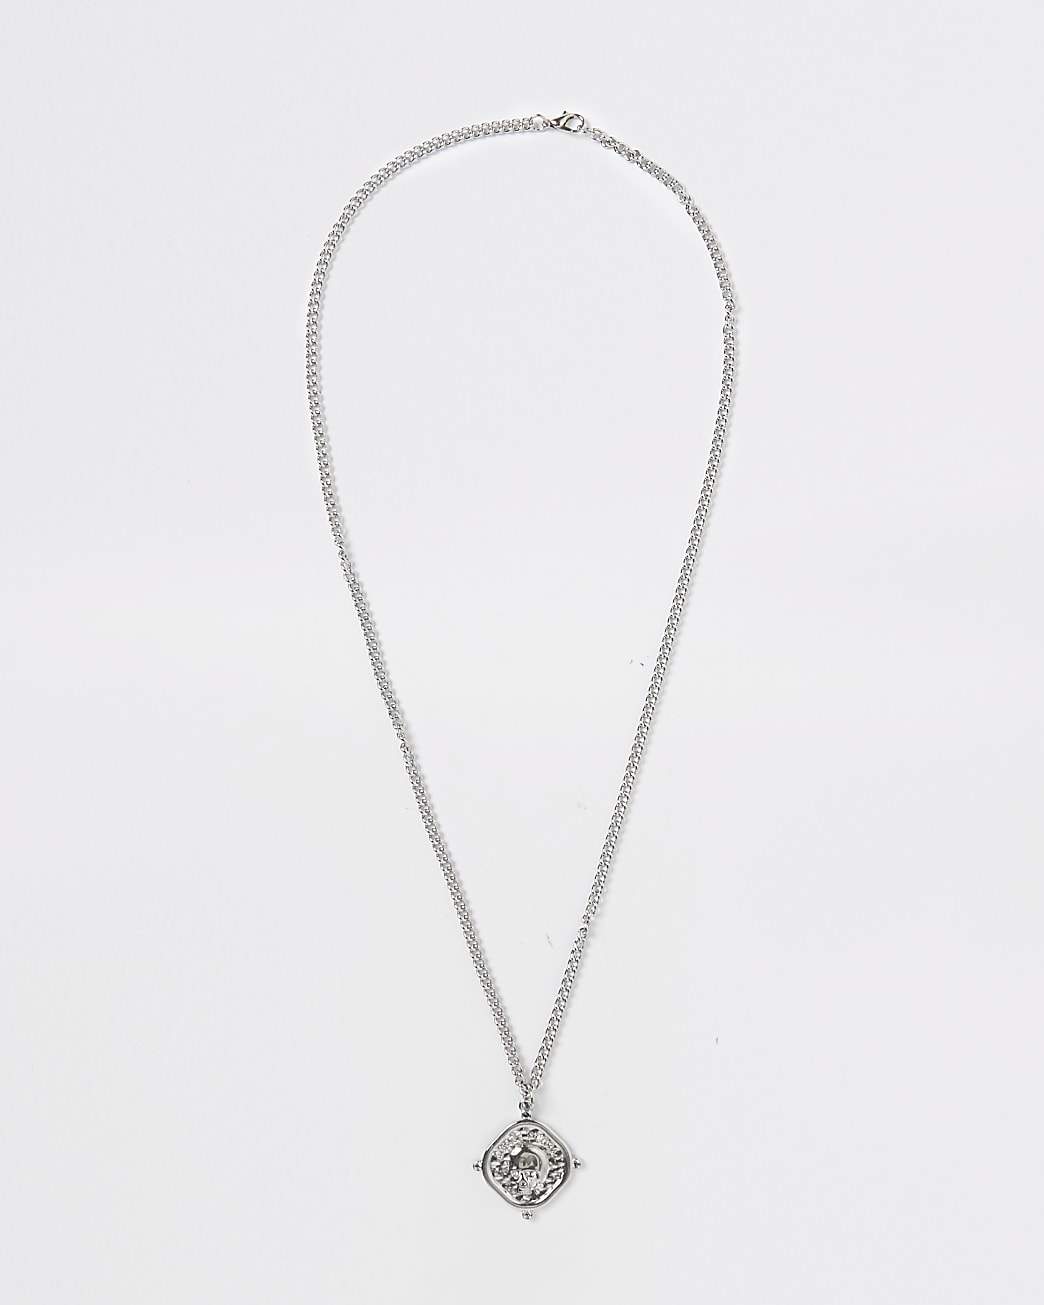 Silver skull engraved pendant necklace